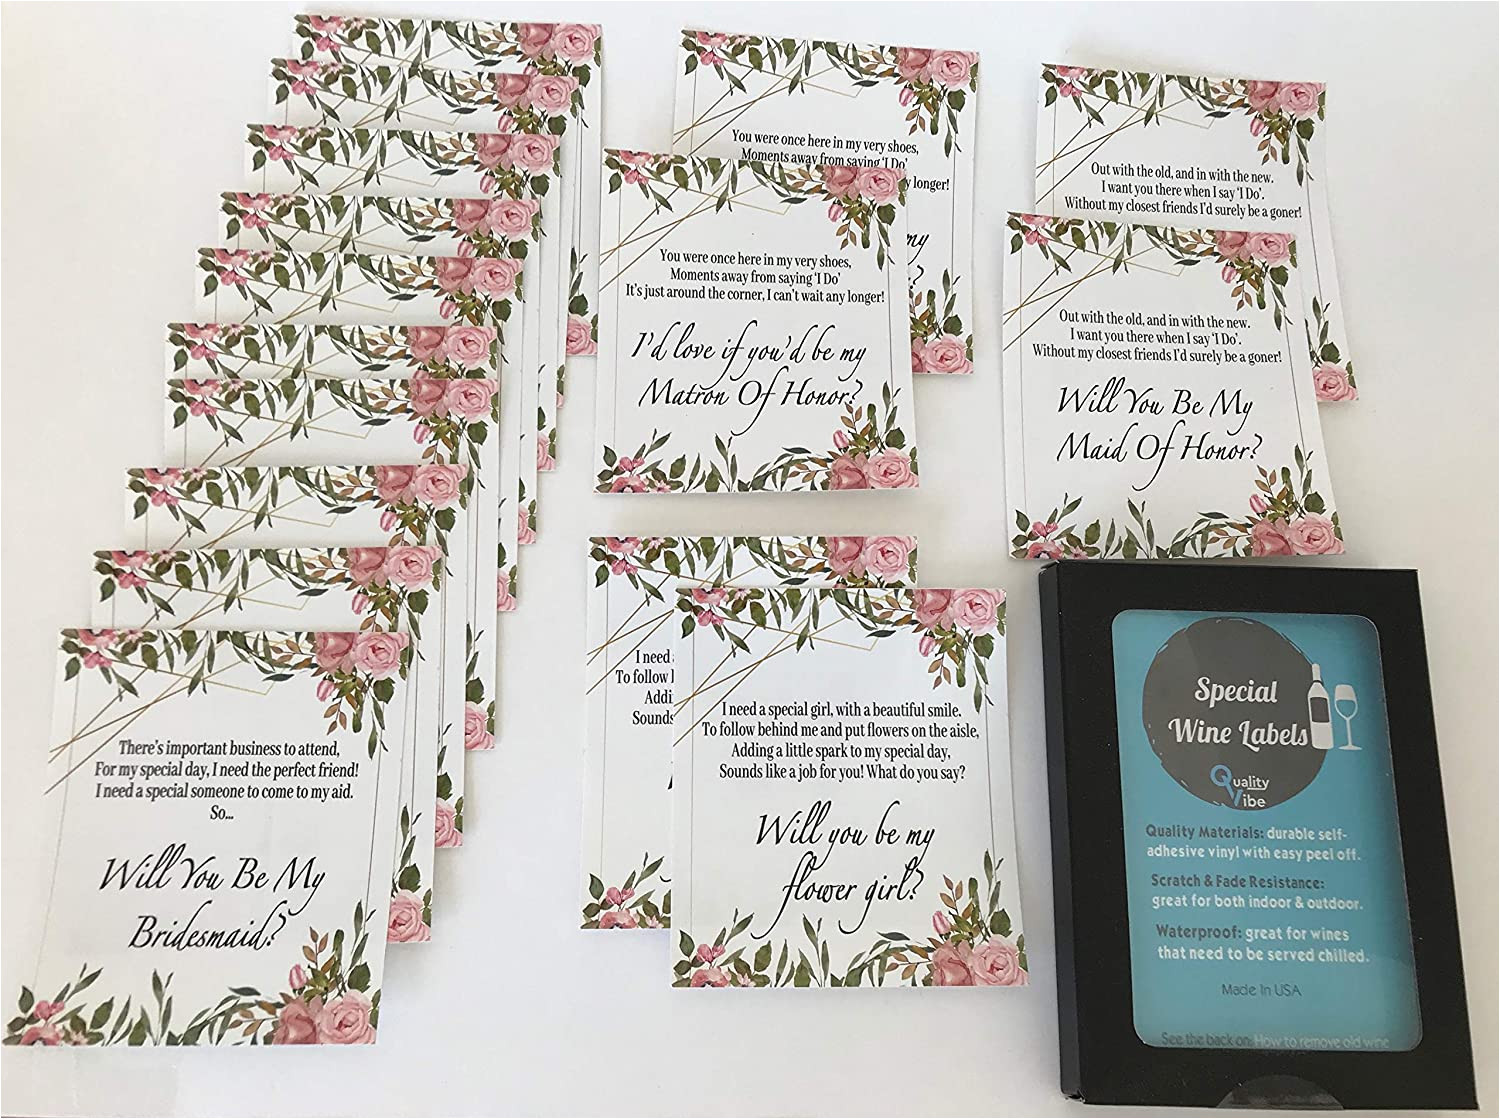 Scratch Card Wedding Favours Poem Set Of 16 Labels Will You Be My Bridesmaid Matron Of Honor Maid Of Honor Flower Girl with Poems ask Bridesmaids Using Beautiful Poems On Labels